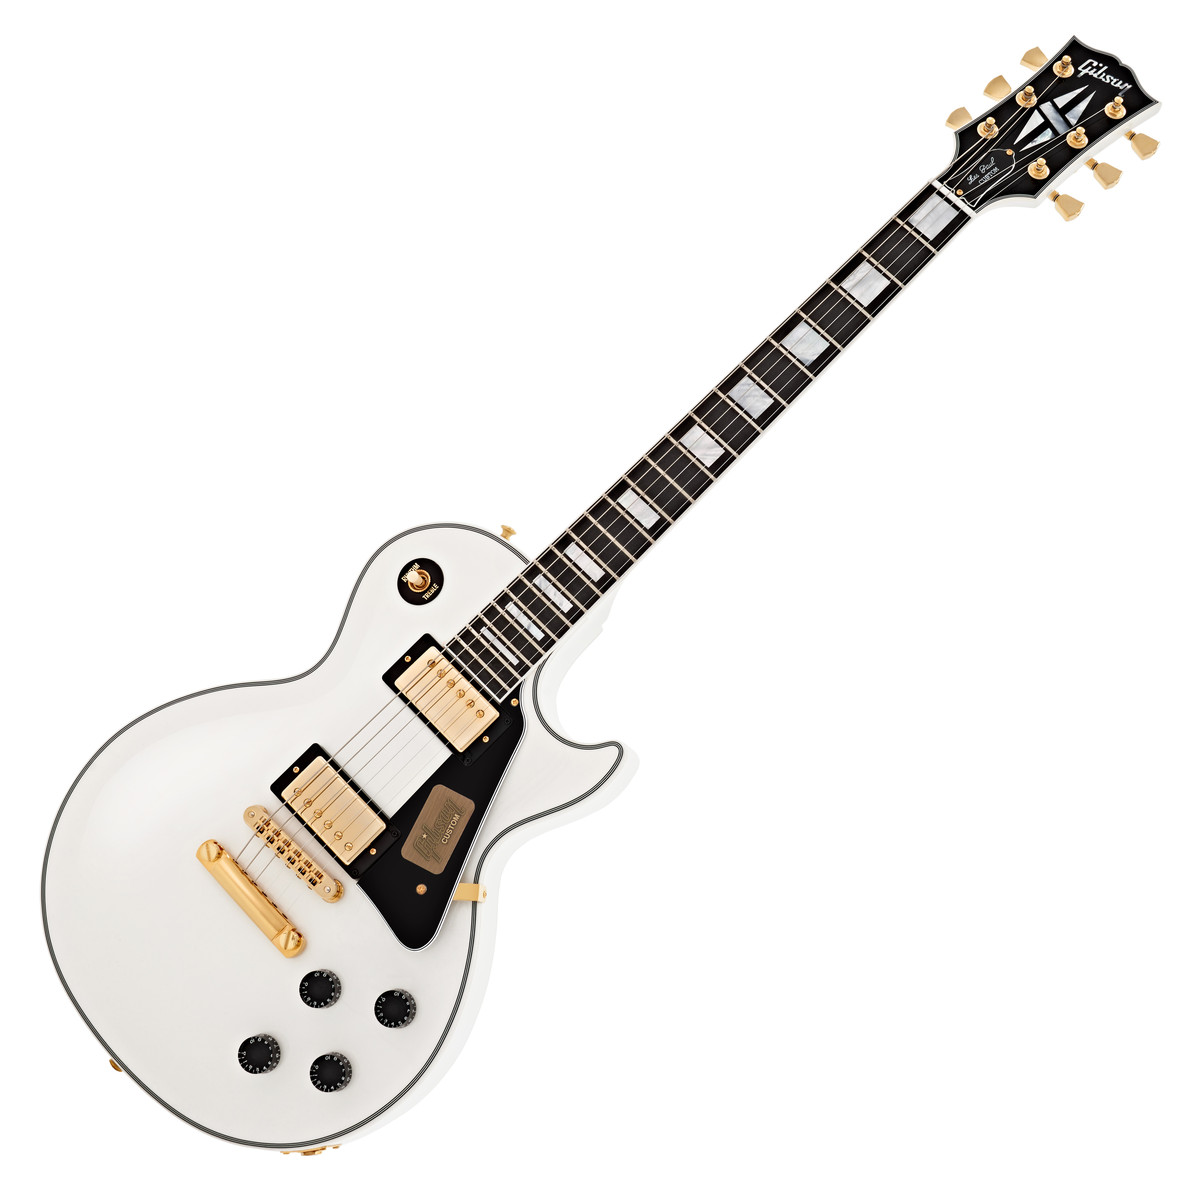 Yamaha Les Paul Custom C